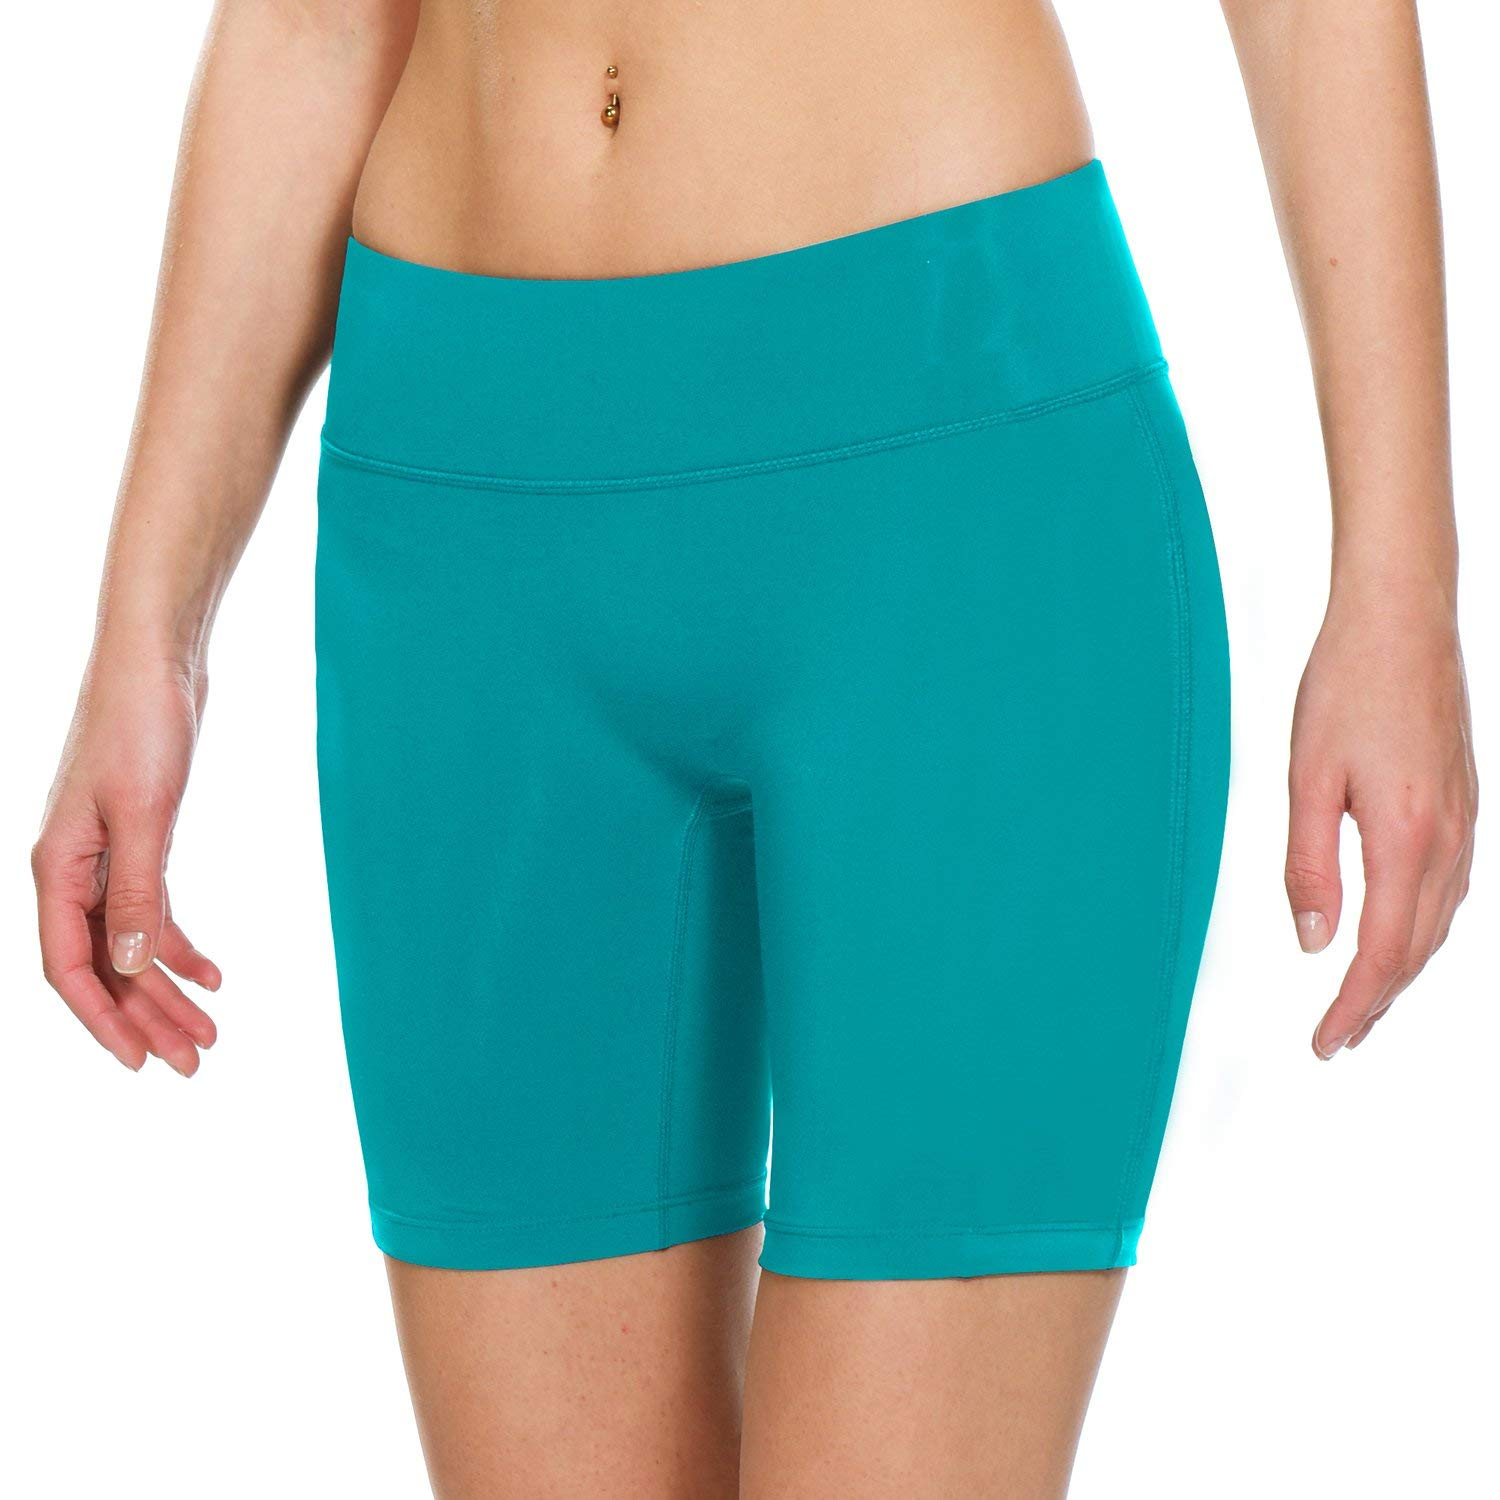 BALEAF Women's 7'' Active Fitness Yoga Running Shorts Pocket Green Size S by BALEAF